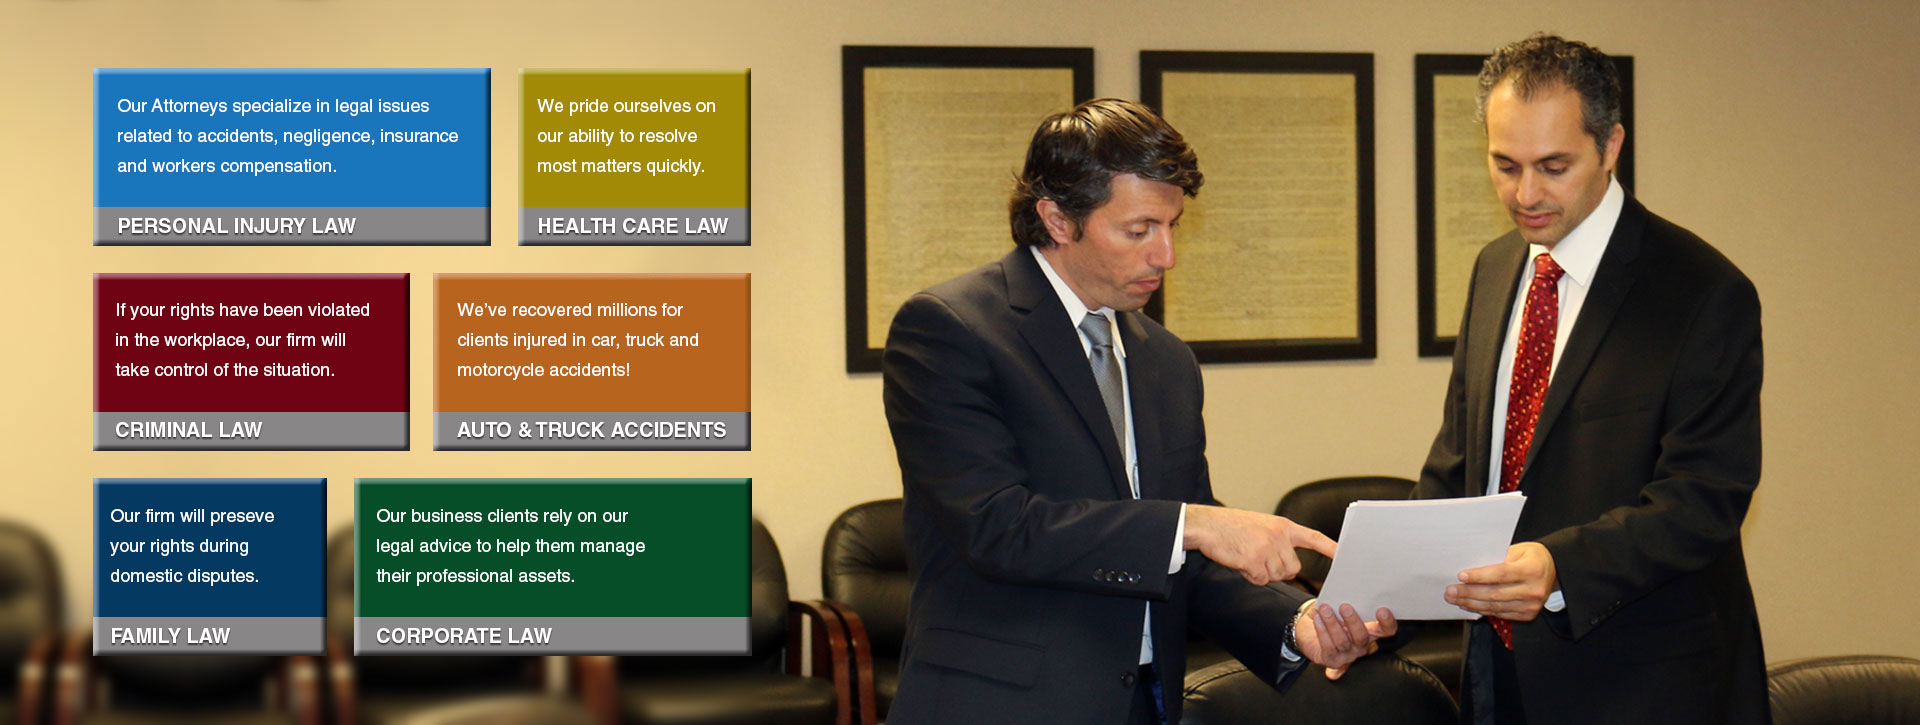 Medical Attorney Dearborn